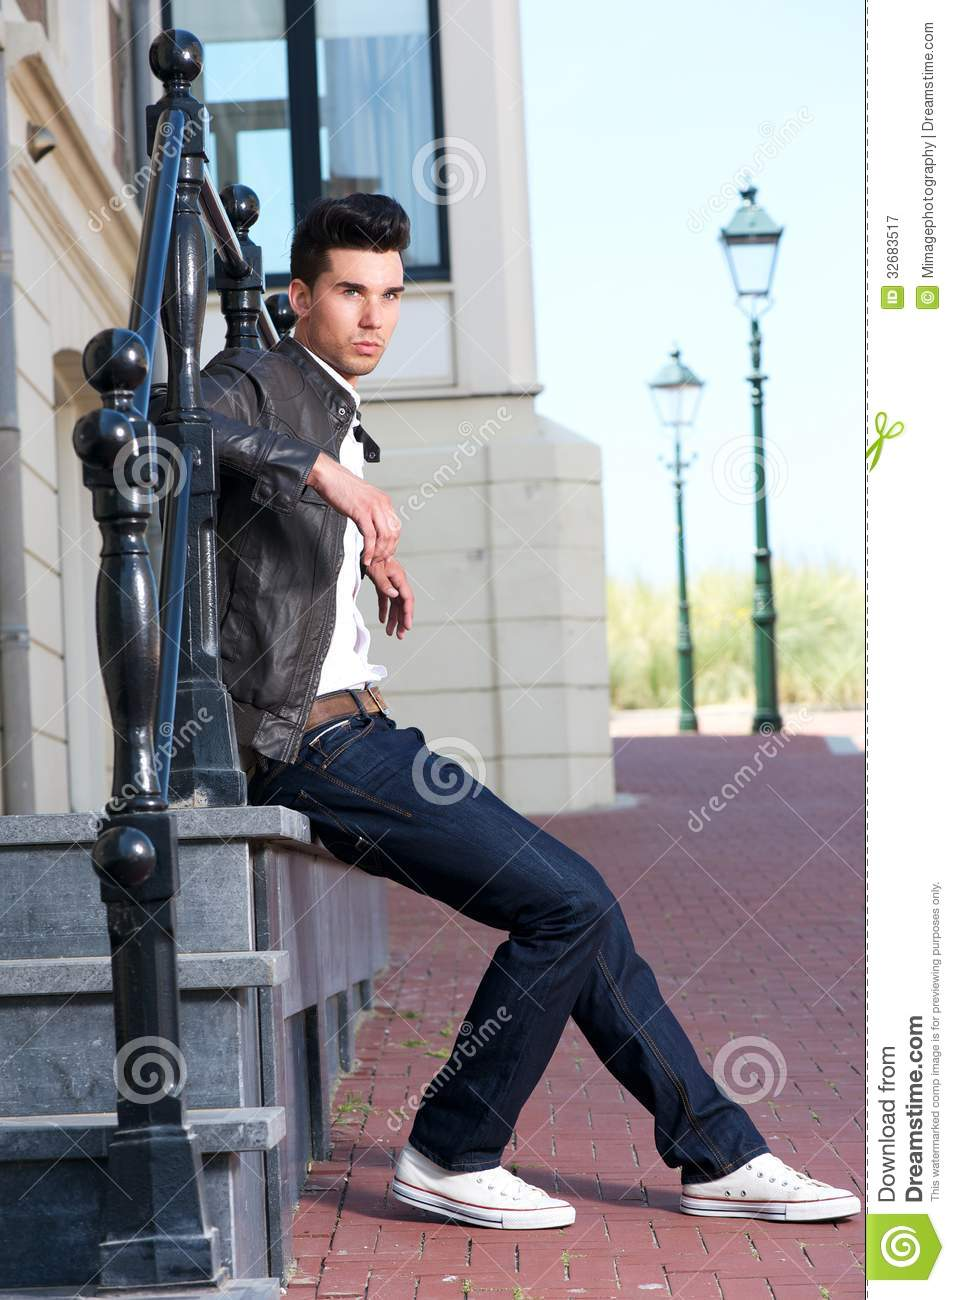 Male Fashion Model In Leather Jacket Sitting Outdoors